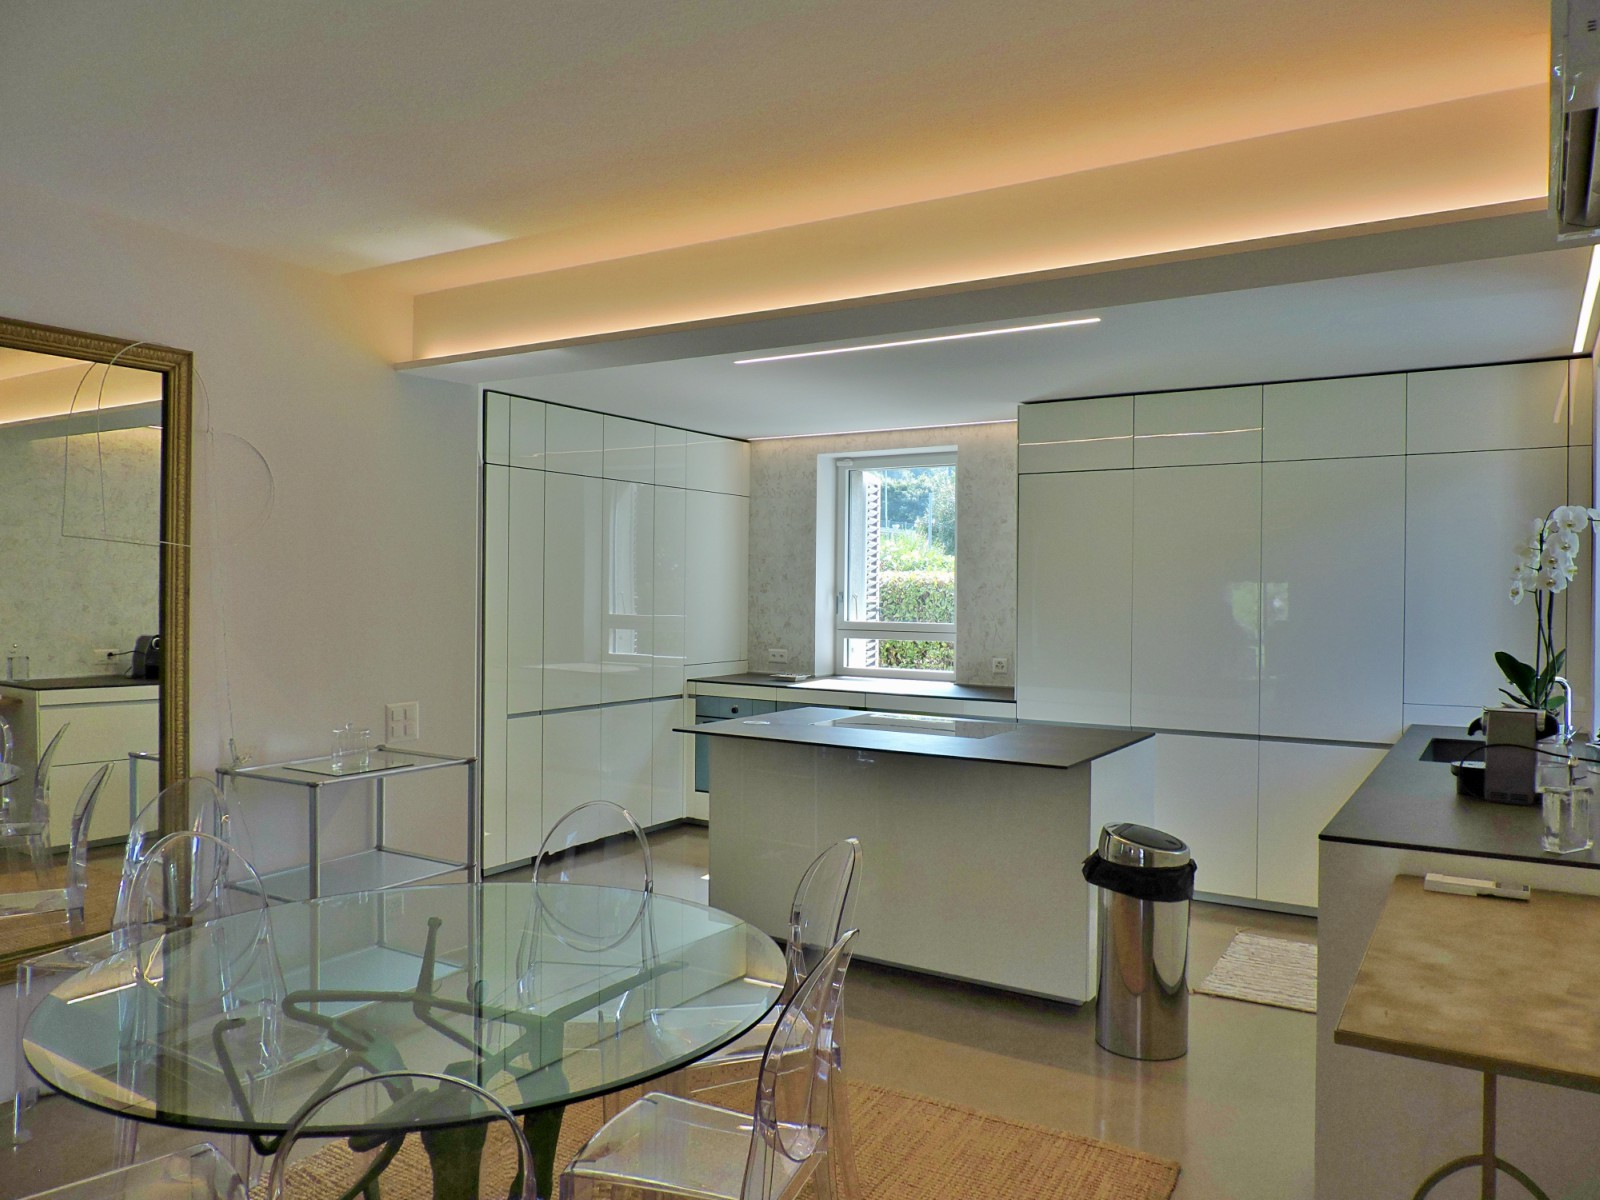 How to decor an open space: a kitchen project on Lake Lugano